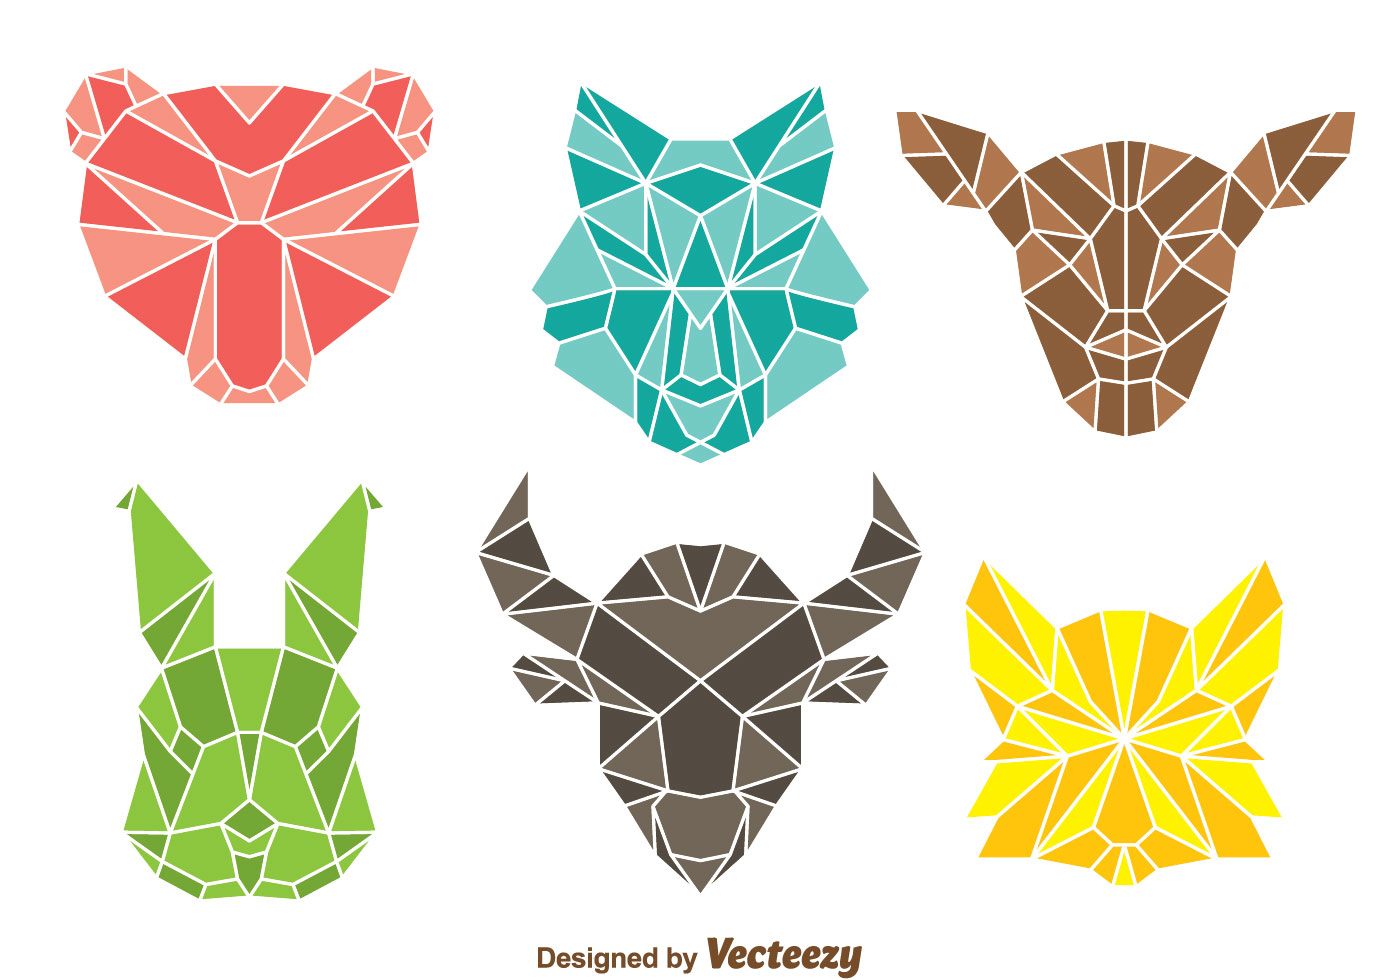 97209 Vector Colorful Polygon Animal Head likewise Viewgame likewise Decoracao De Festa Infantil Da Moranguinho additionally Top 5 Xbox Games For Animal Lovers also Birthday Clip Art. on bear pinata